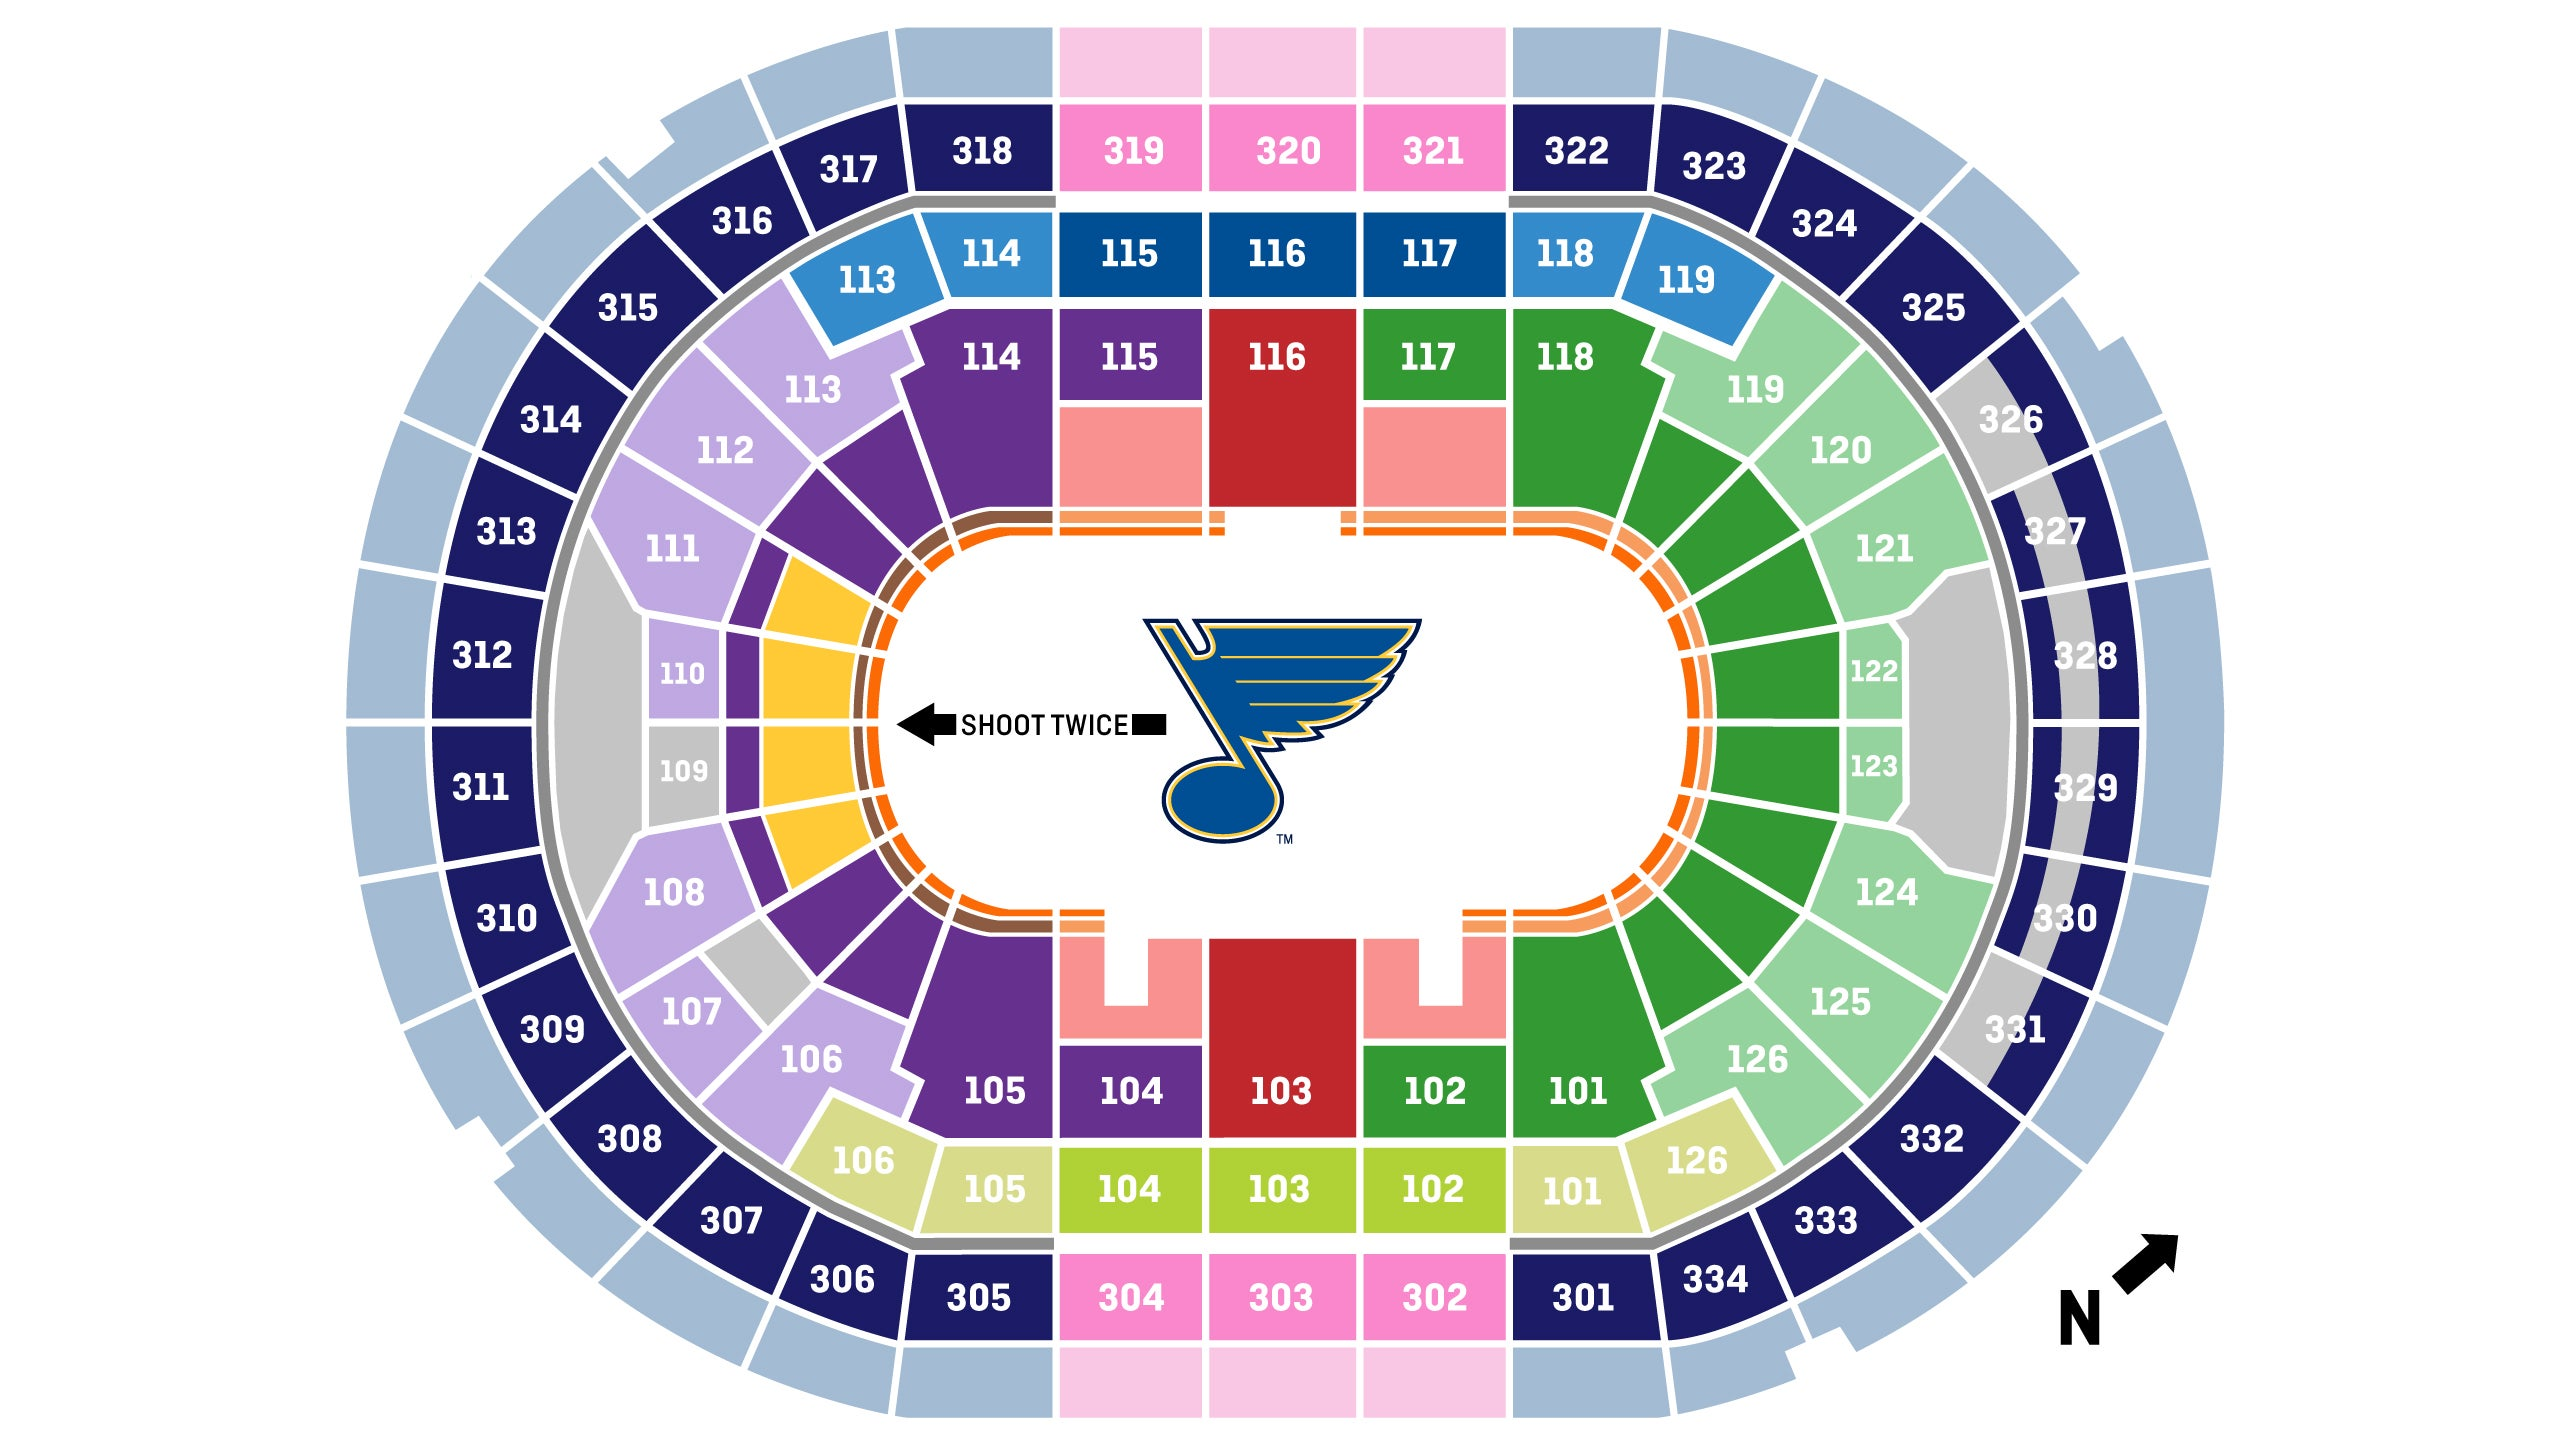 St. Louis Blues 2018/19